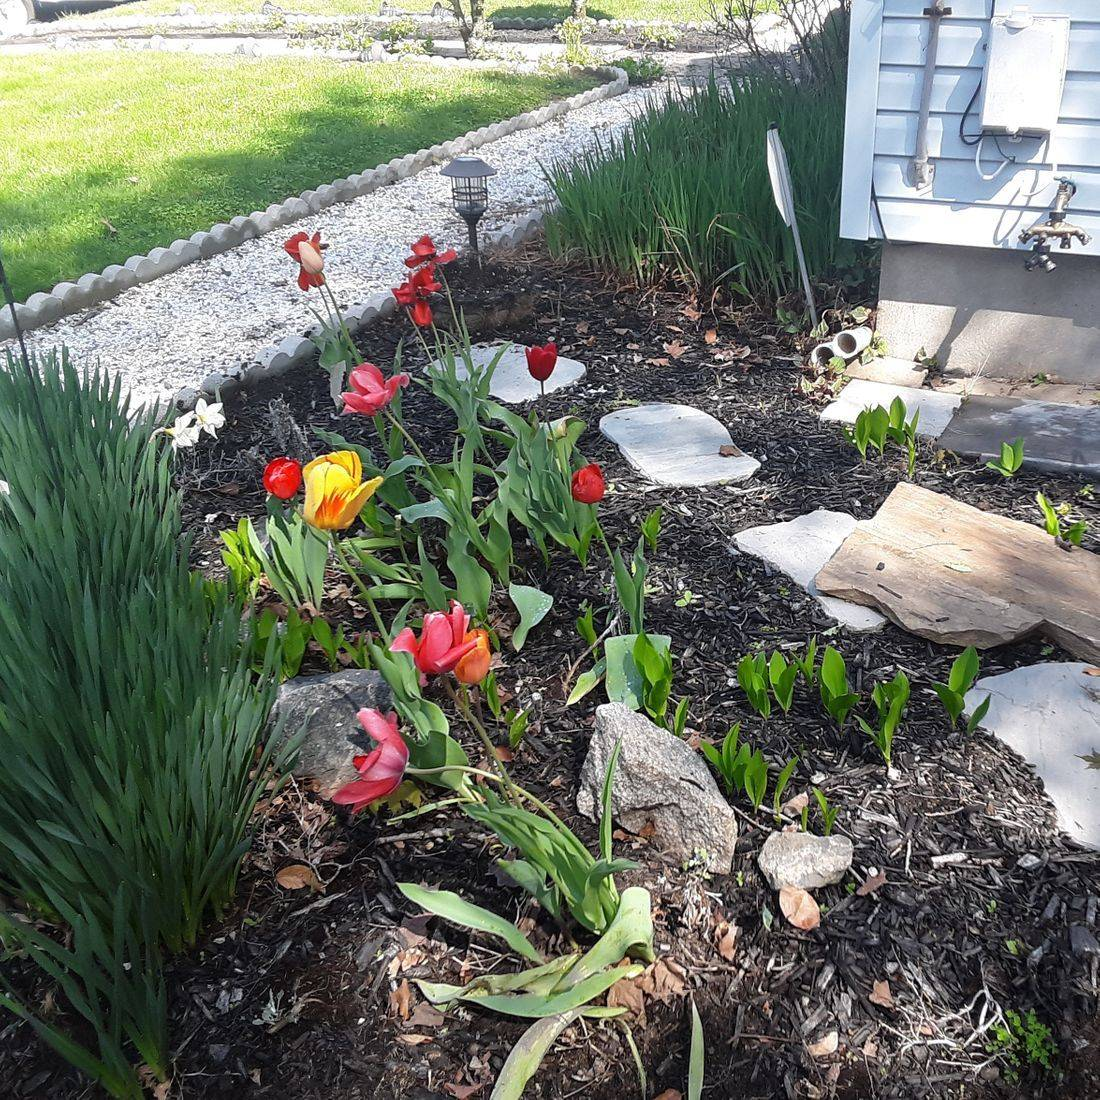 northeast Connecticut, lawncare, mowing, trimming, lawn maintenance, Labbes Lawncare Plus, weed whacking, edging, clean-up